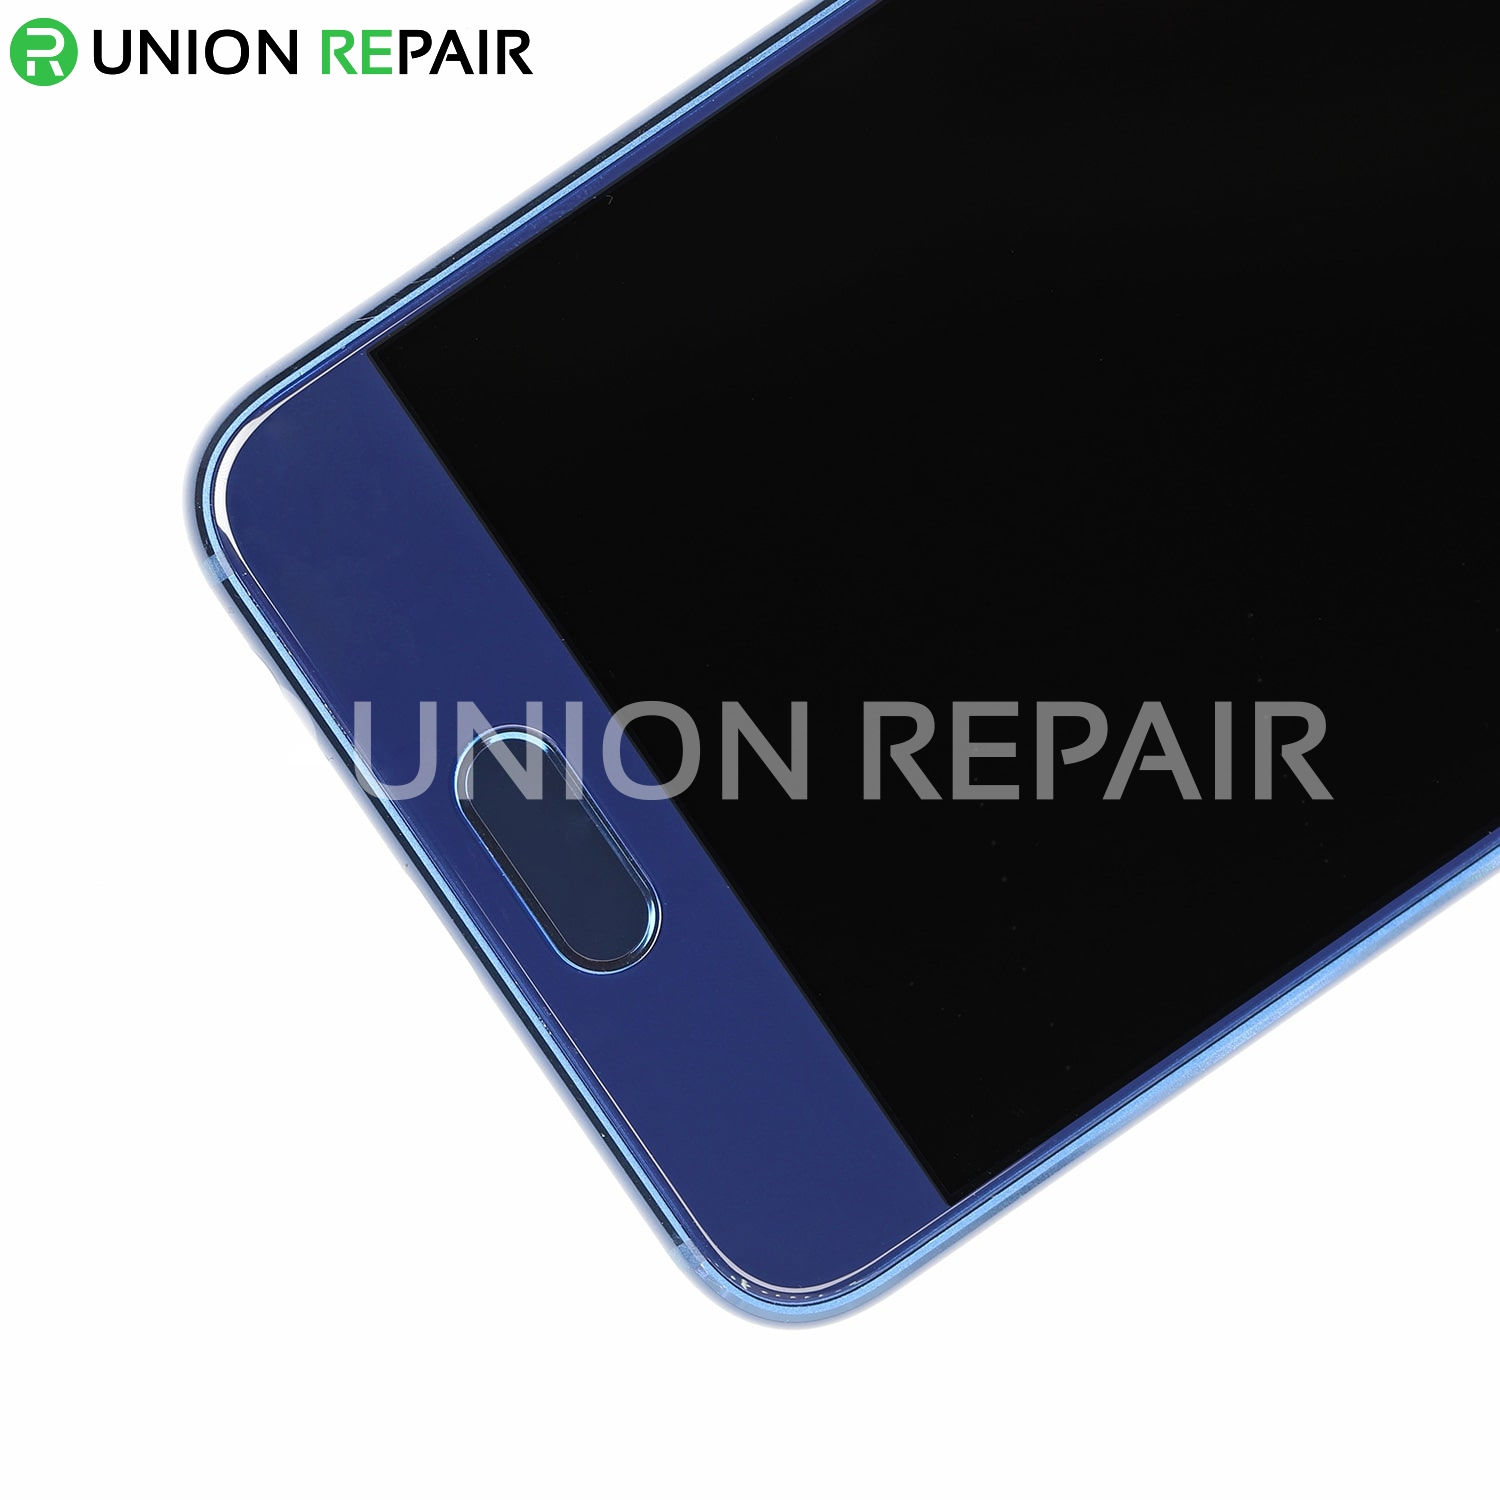 Replacement for Huawei Honor 9 LCD Screen Digitizer with Frame - Sapphire Blue